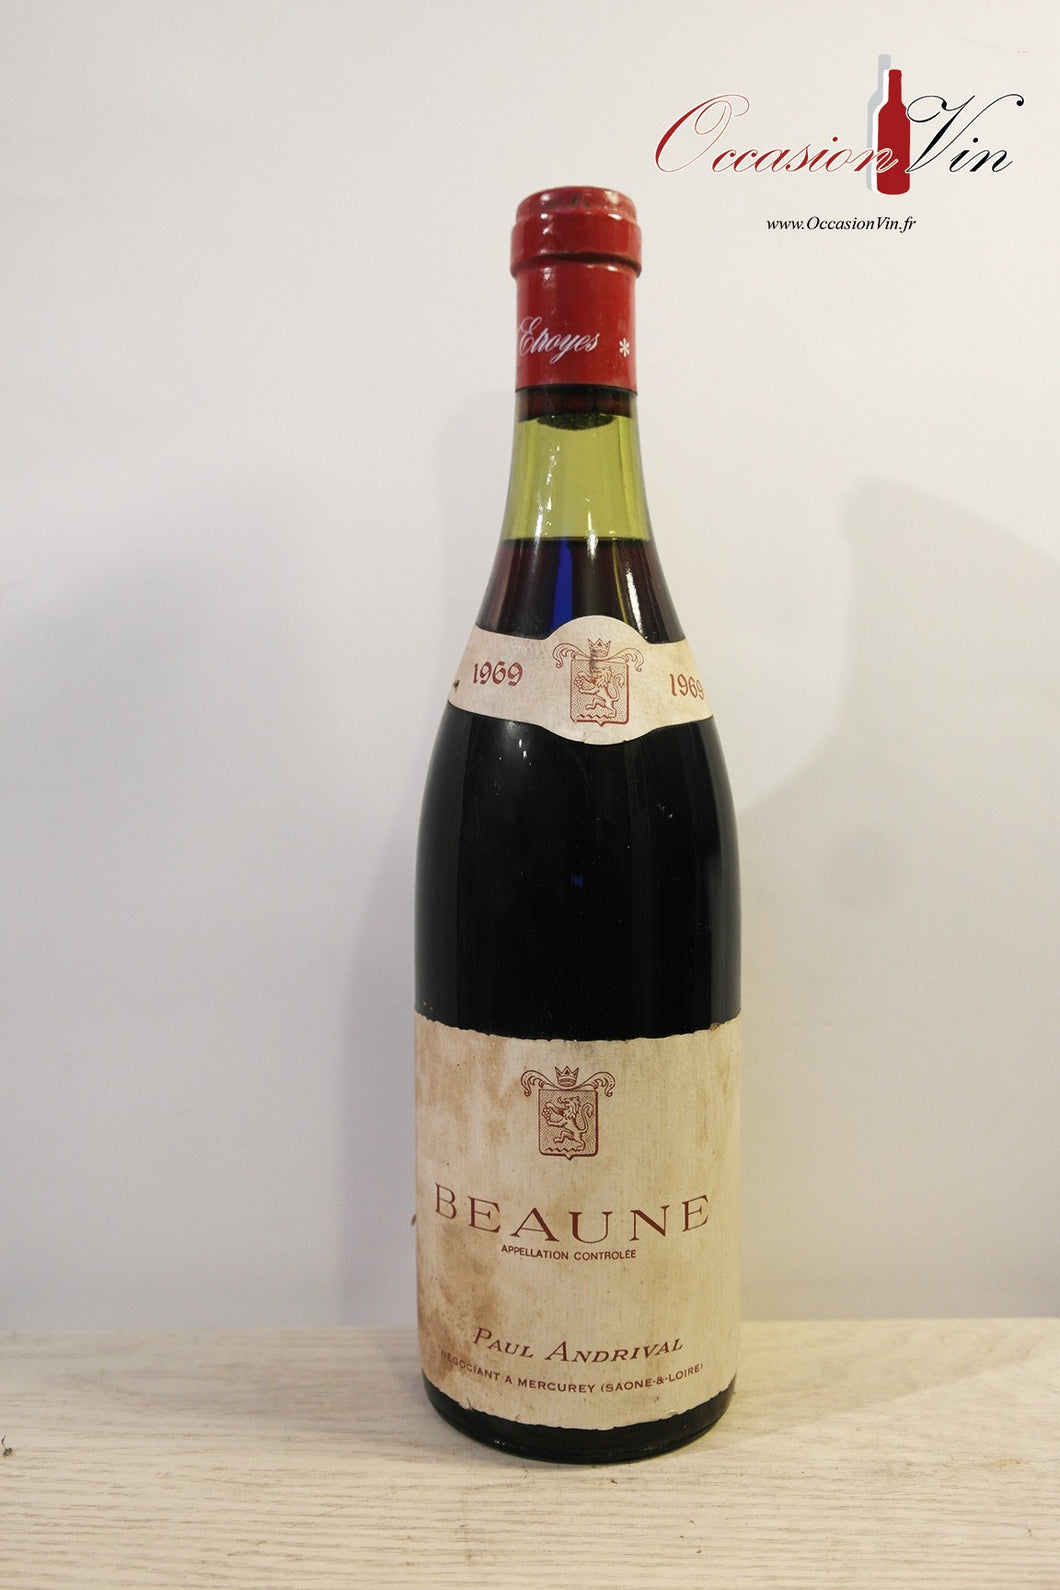 Beaune Andrival Vin 1969